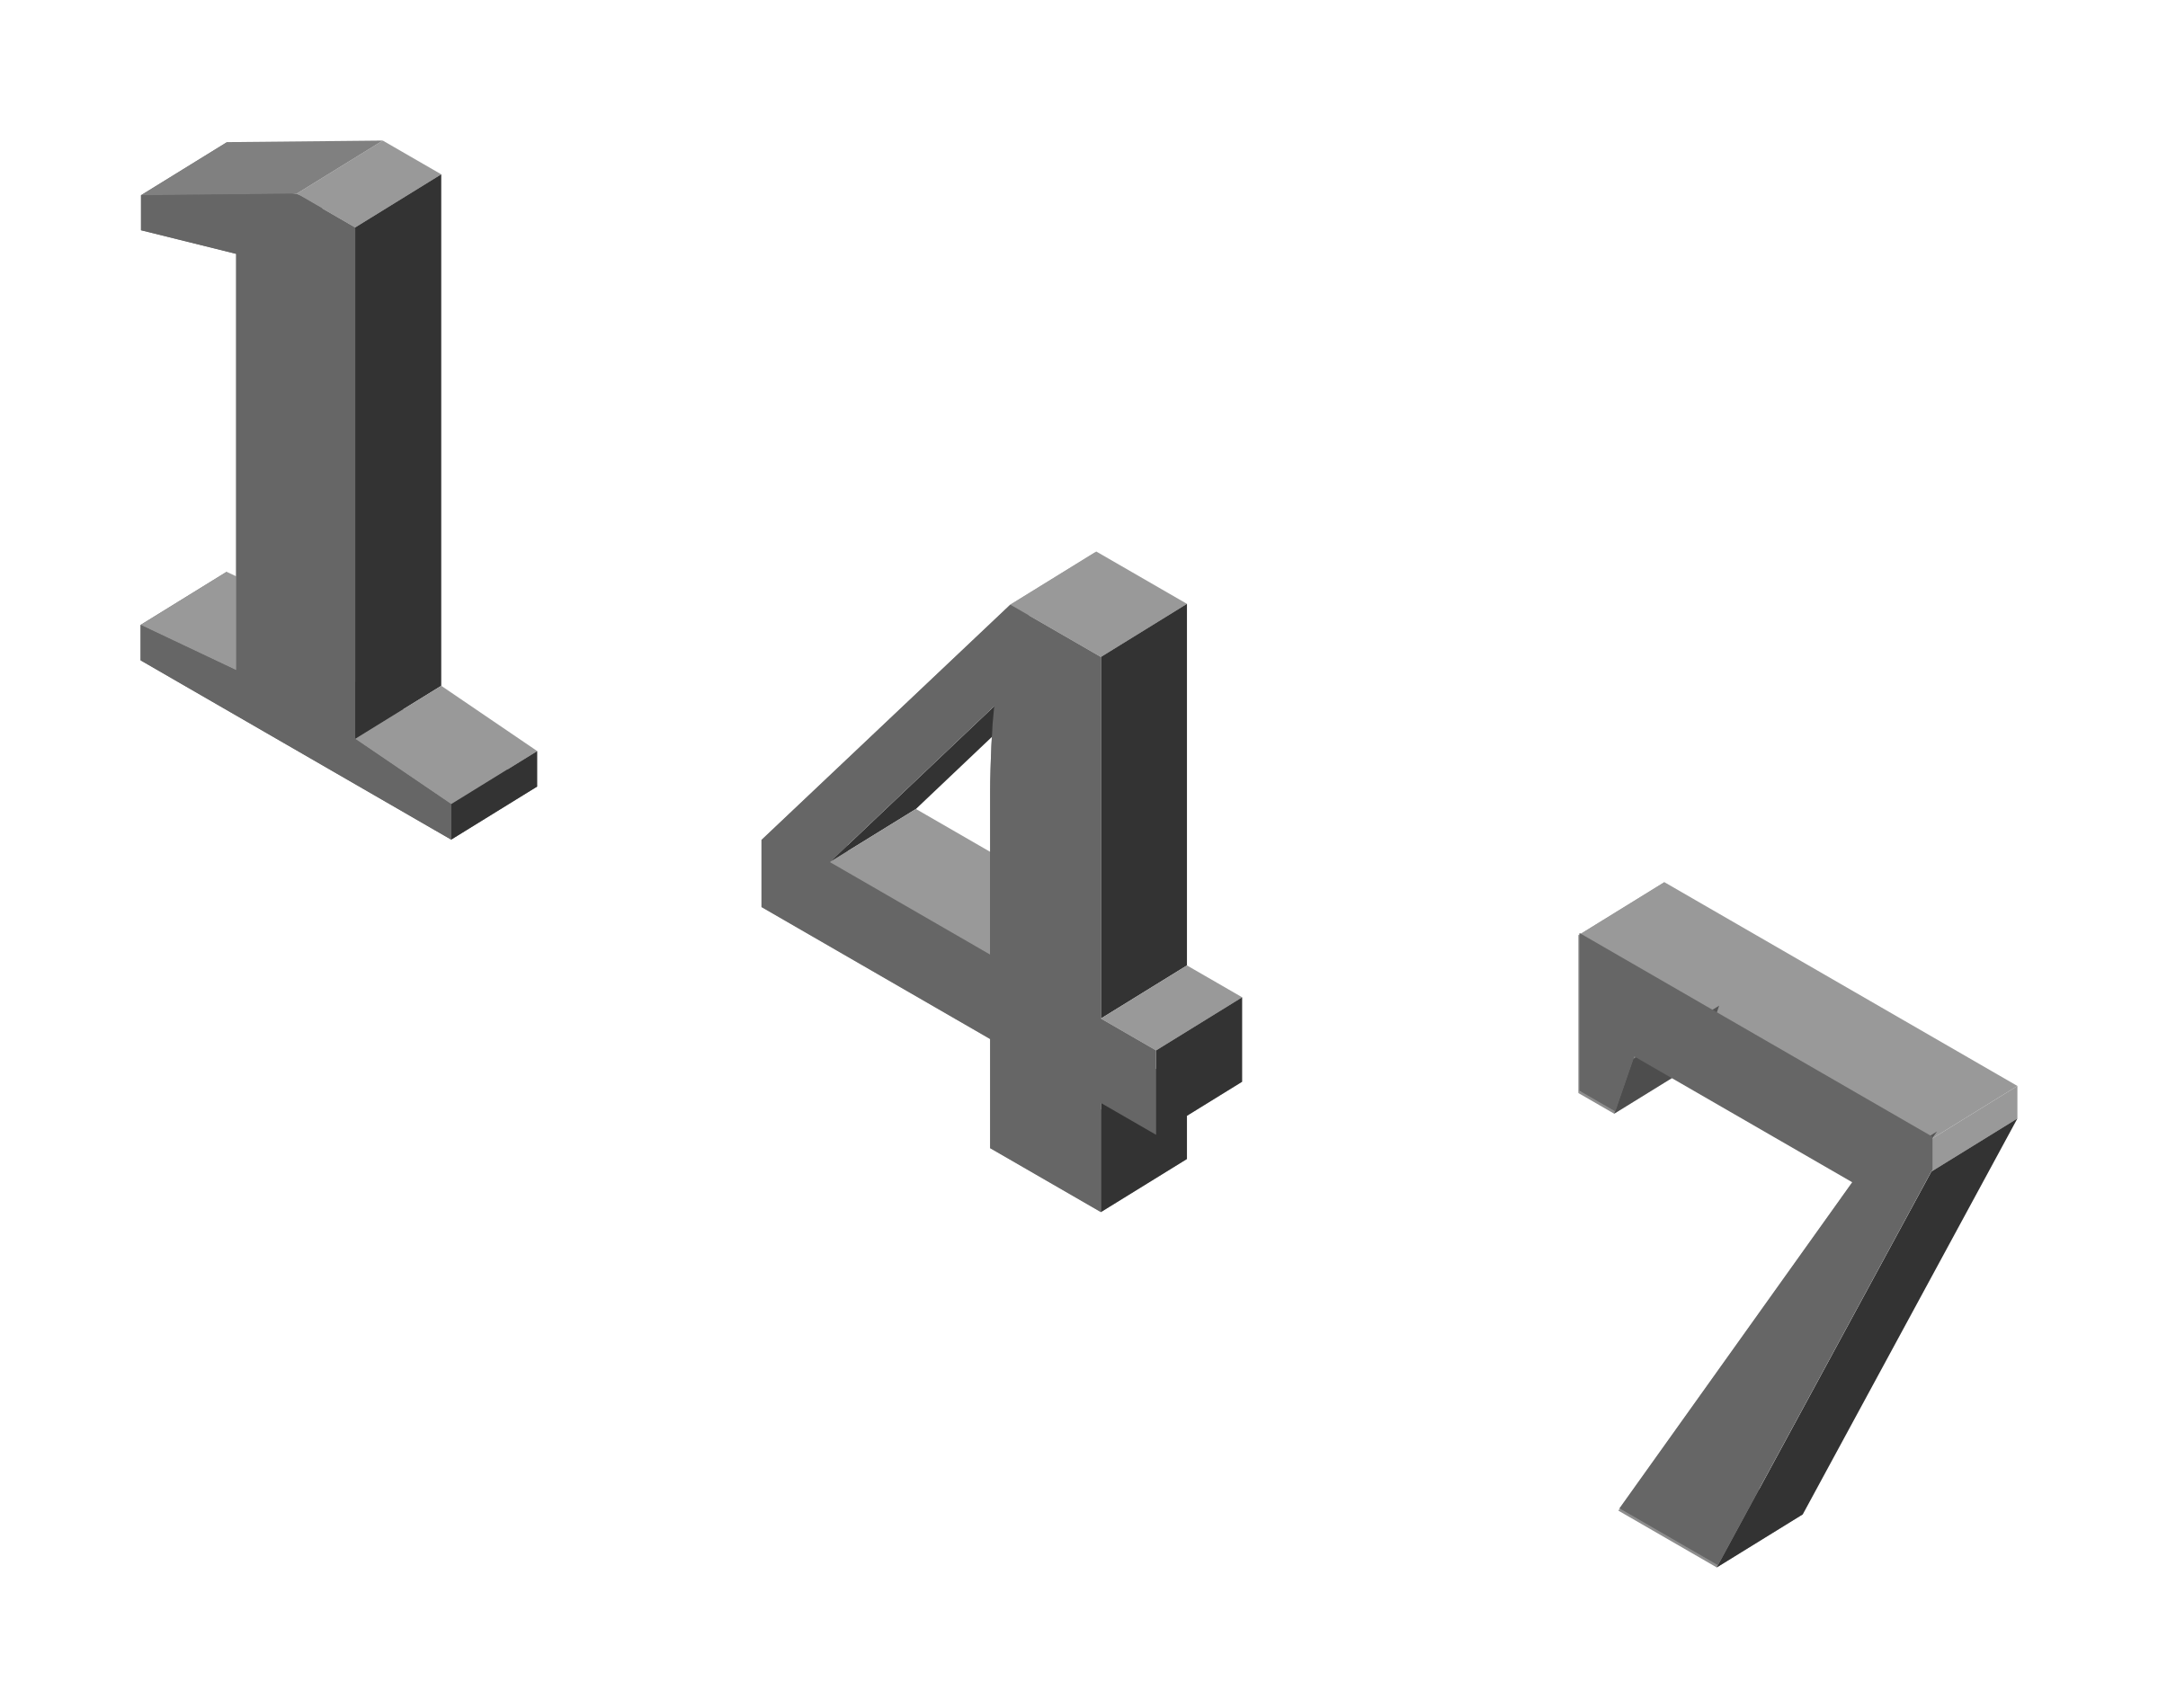 Isometric numbers by aztlek